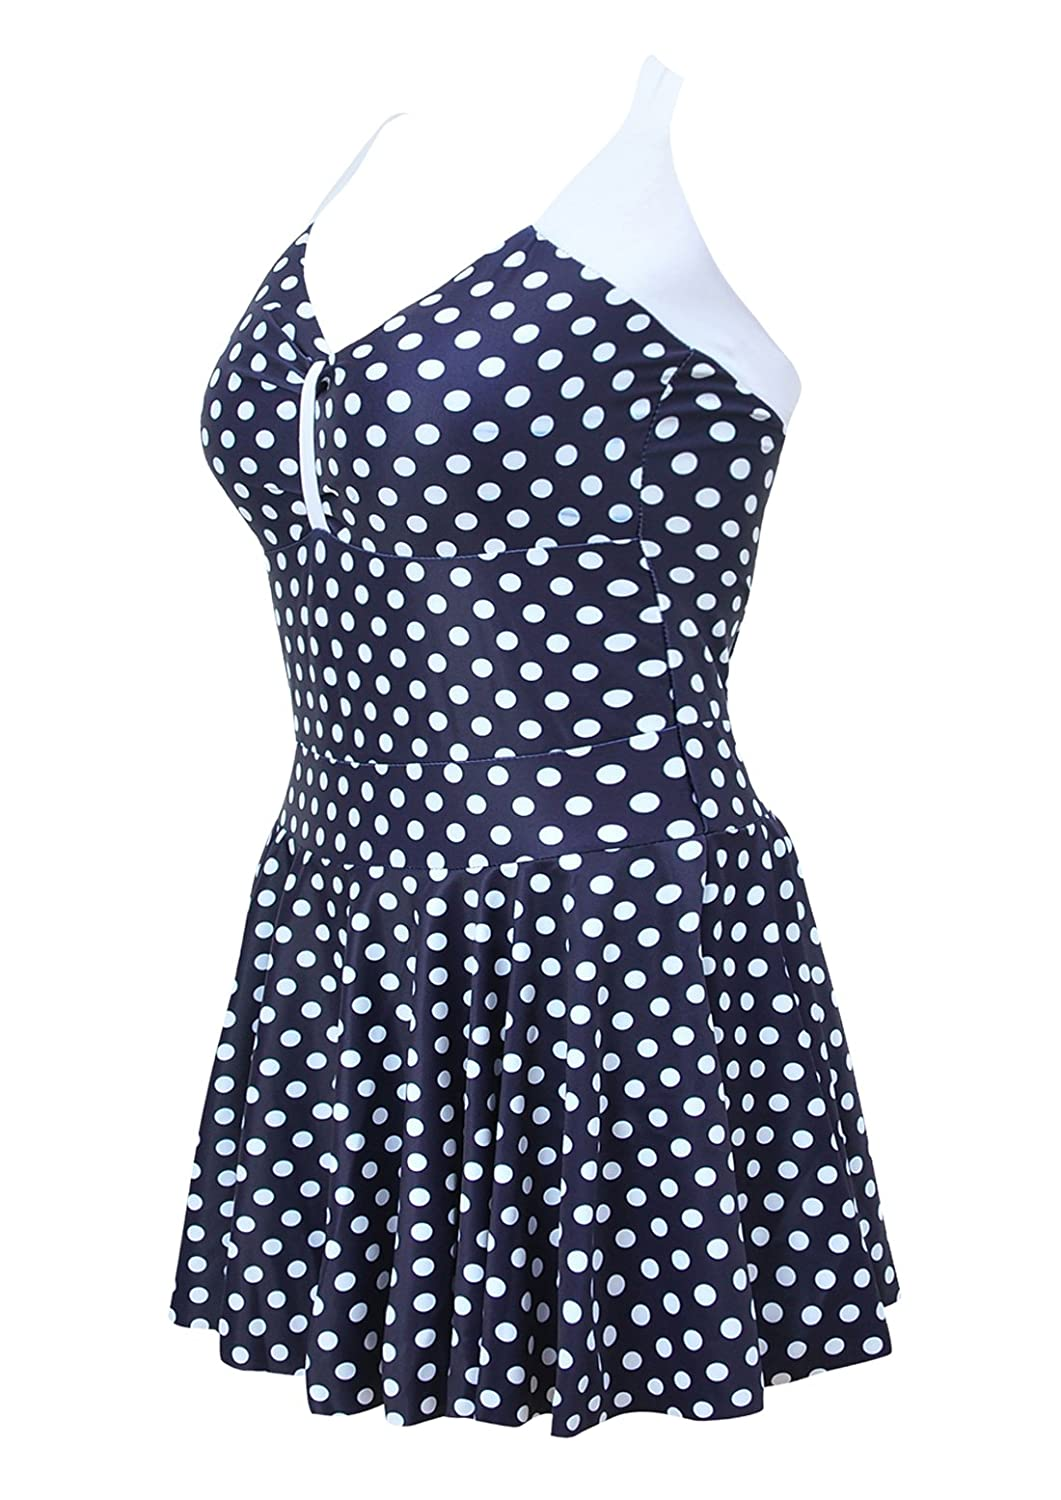 AMAGGIGO Women's Polka Dot One Piece Swimsuit Tummy Control Swimwear Swimdress with Skirt(FBA)